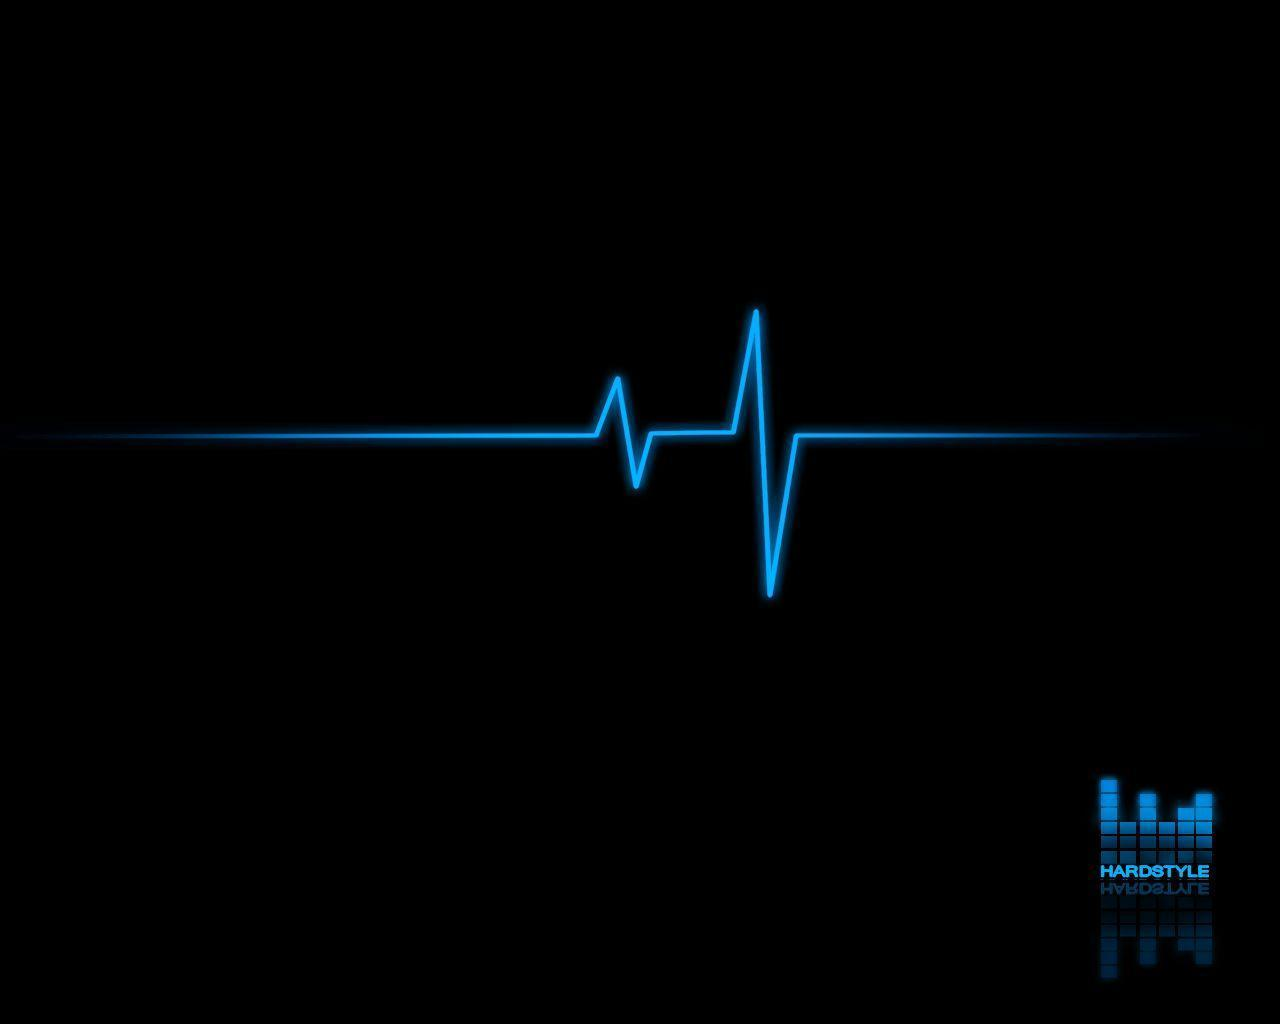 Dj Music Android Hd Wallpaper Black With Blue Pulse 102235